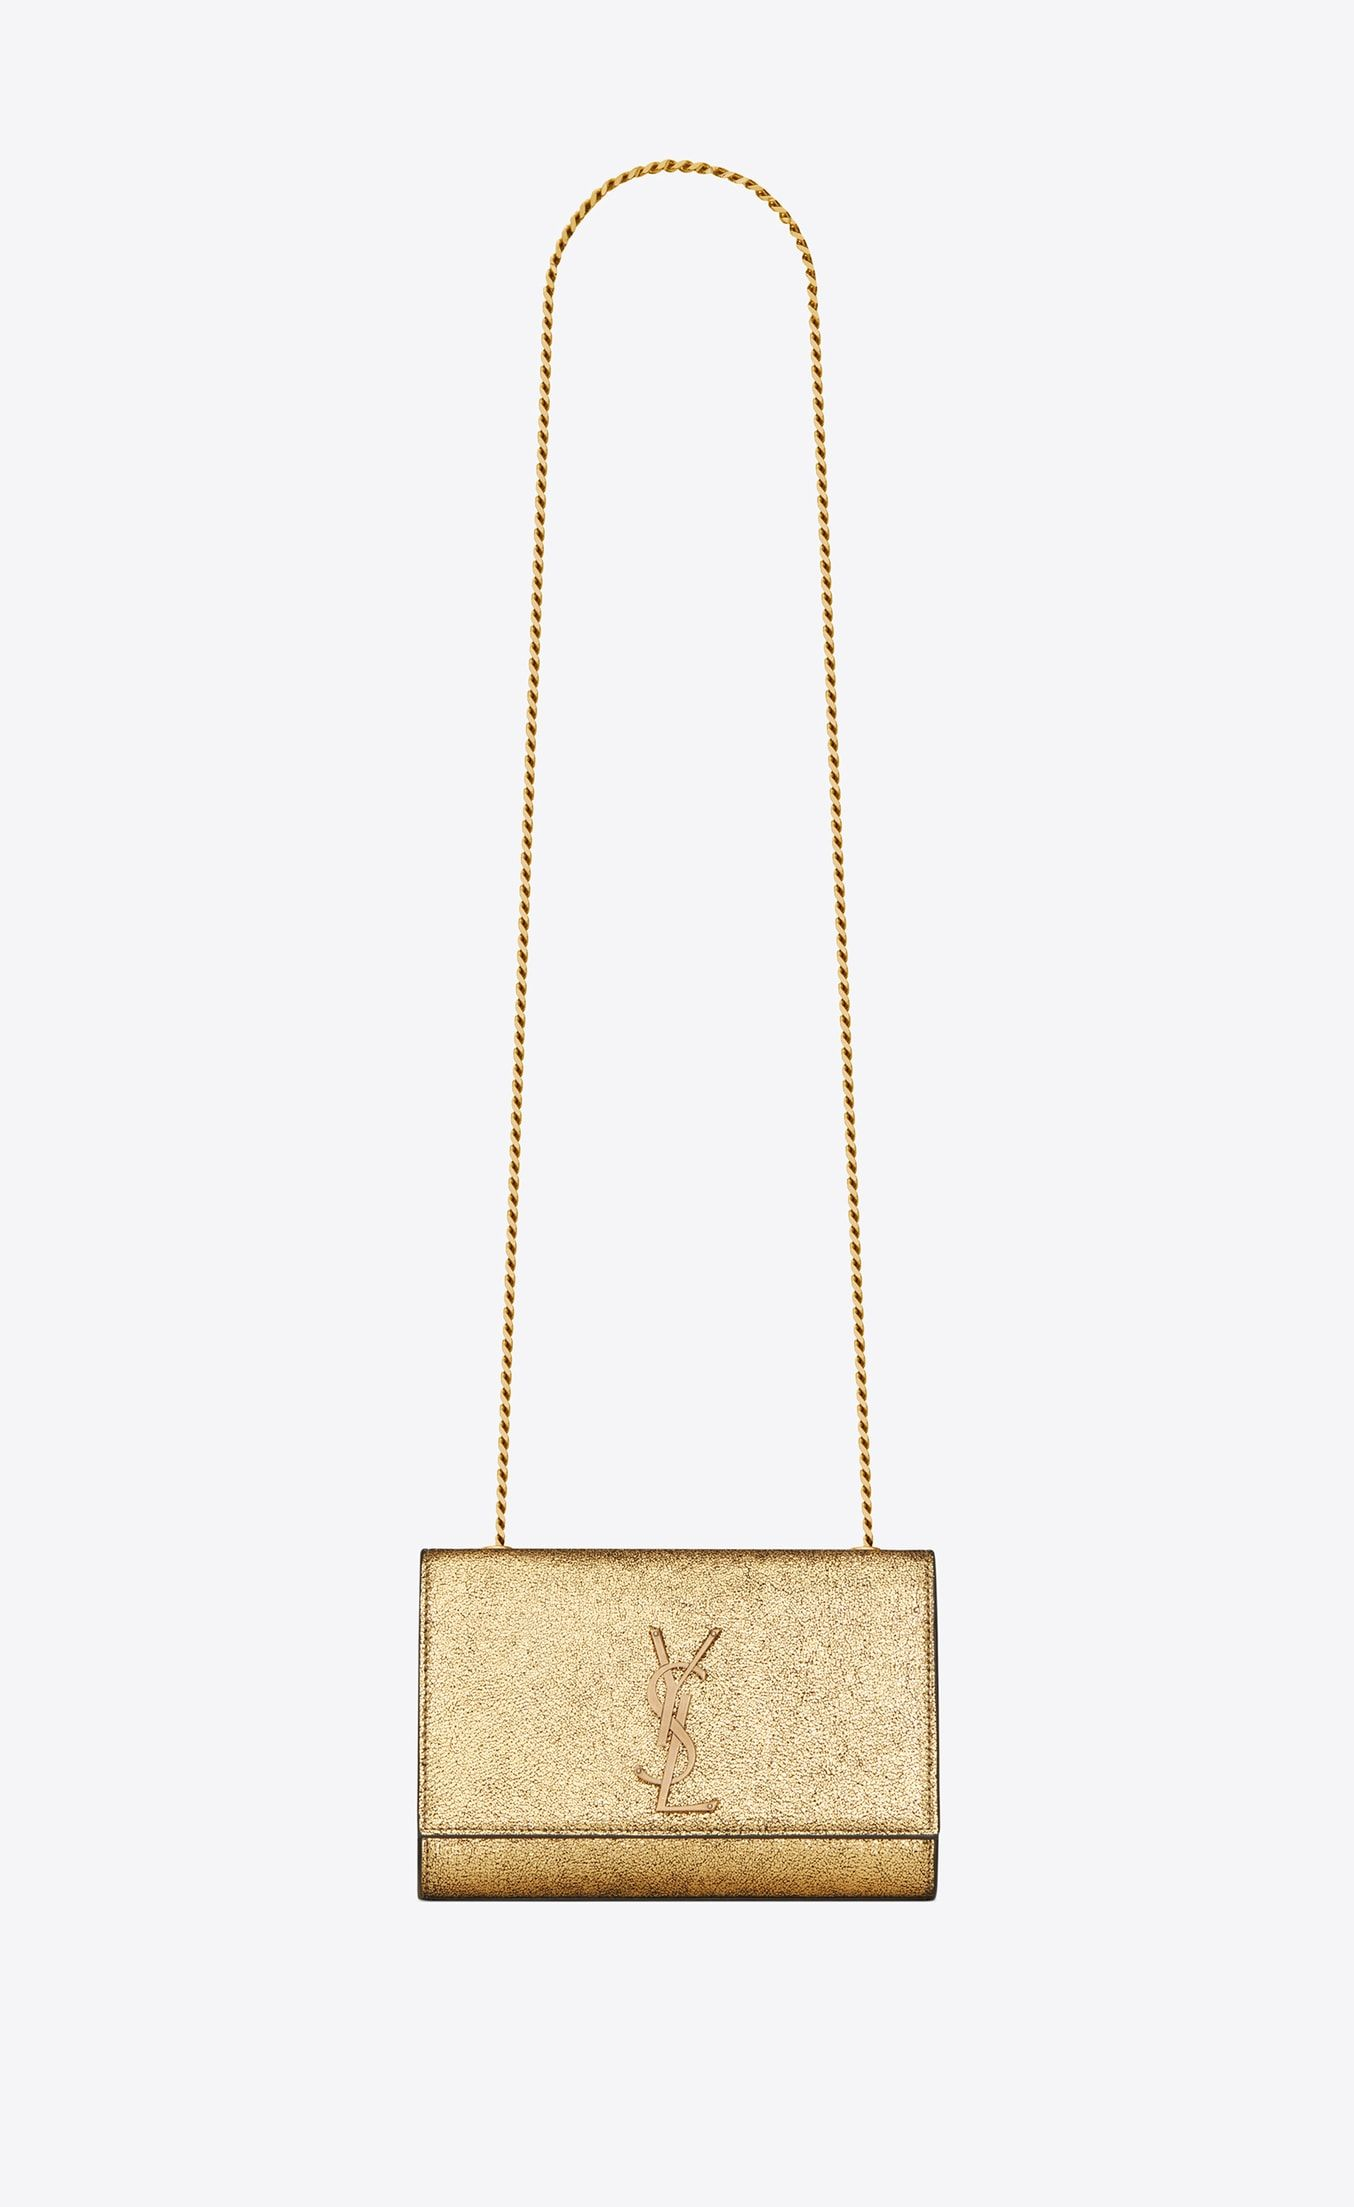 913e2ef396f0 Saint Laurent Small Kate Chain Bag In Crinkled Metallic Gold Leather ...